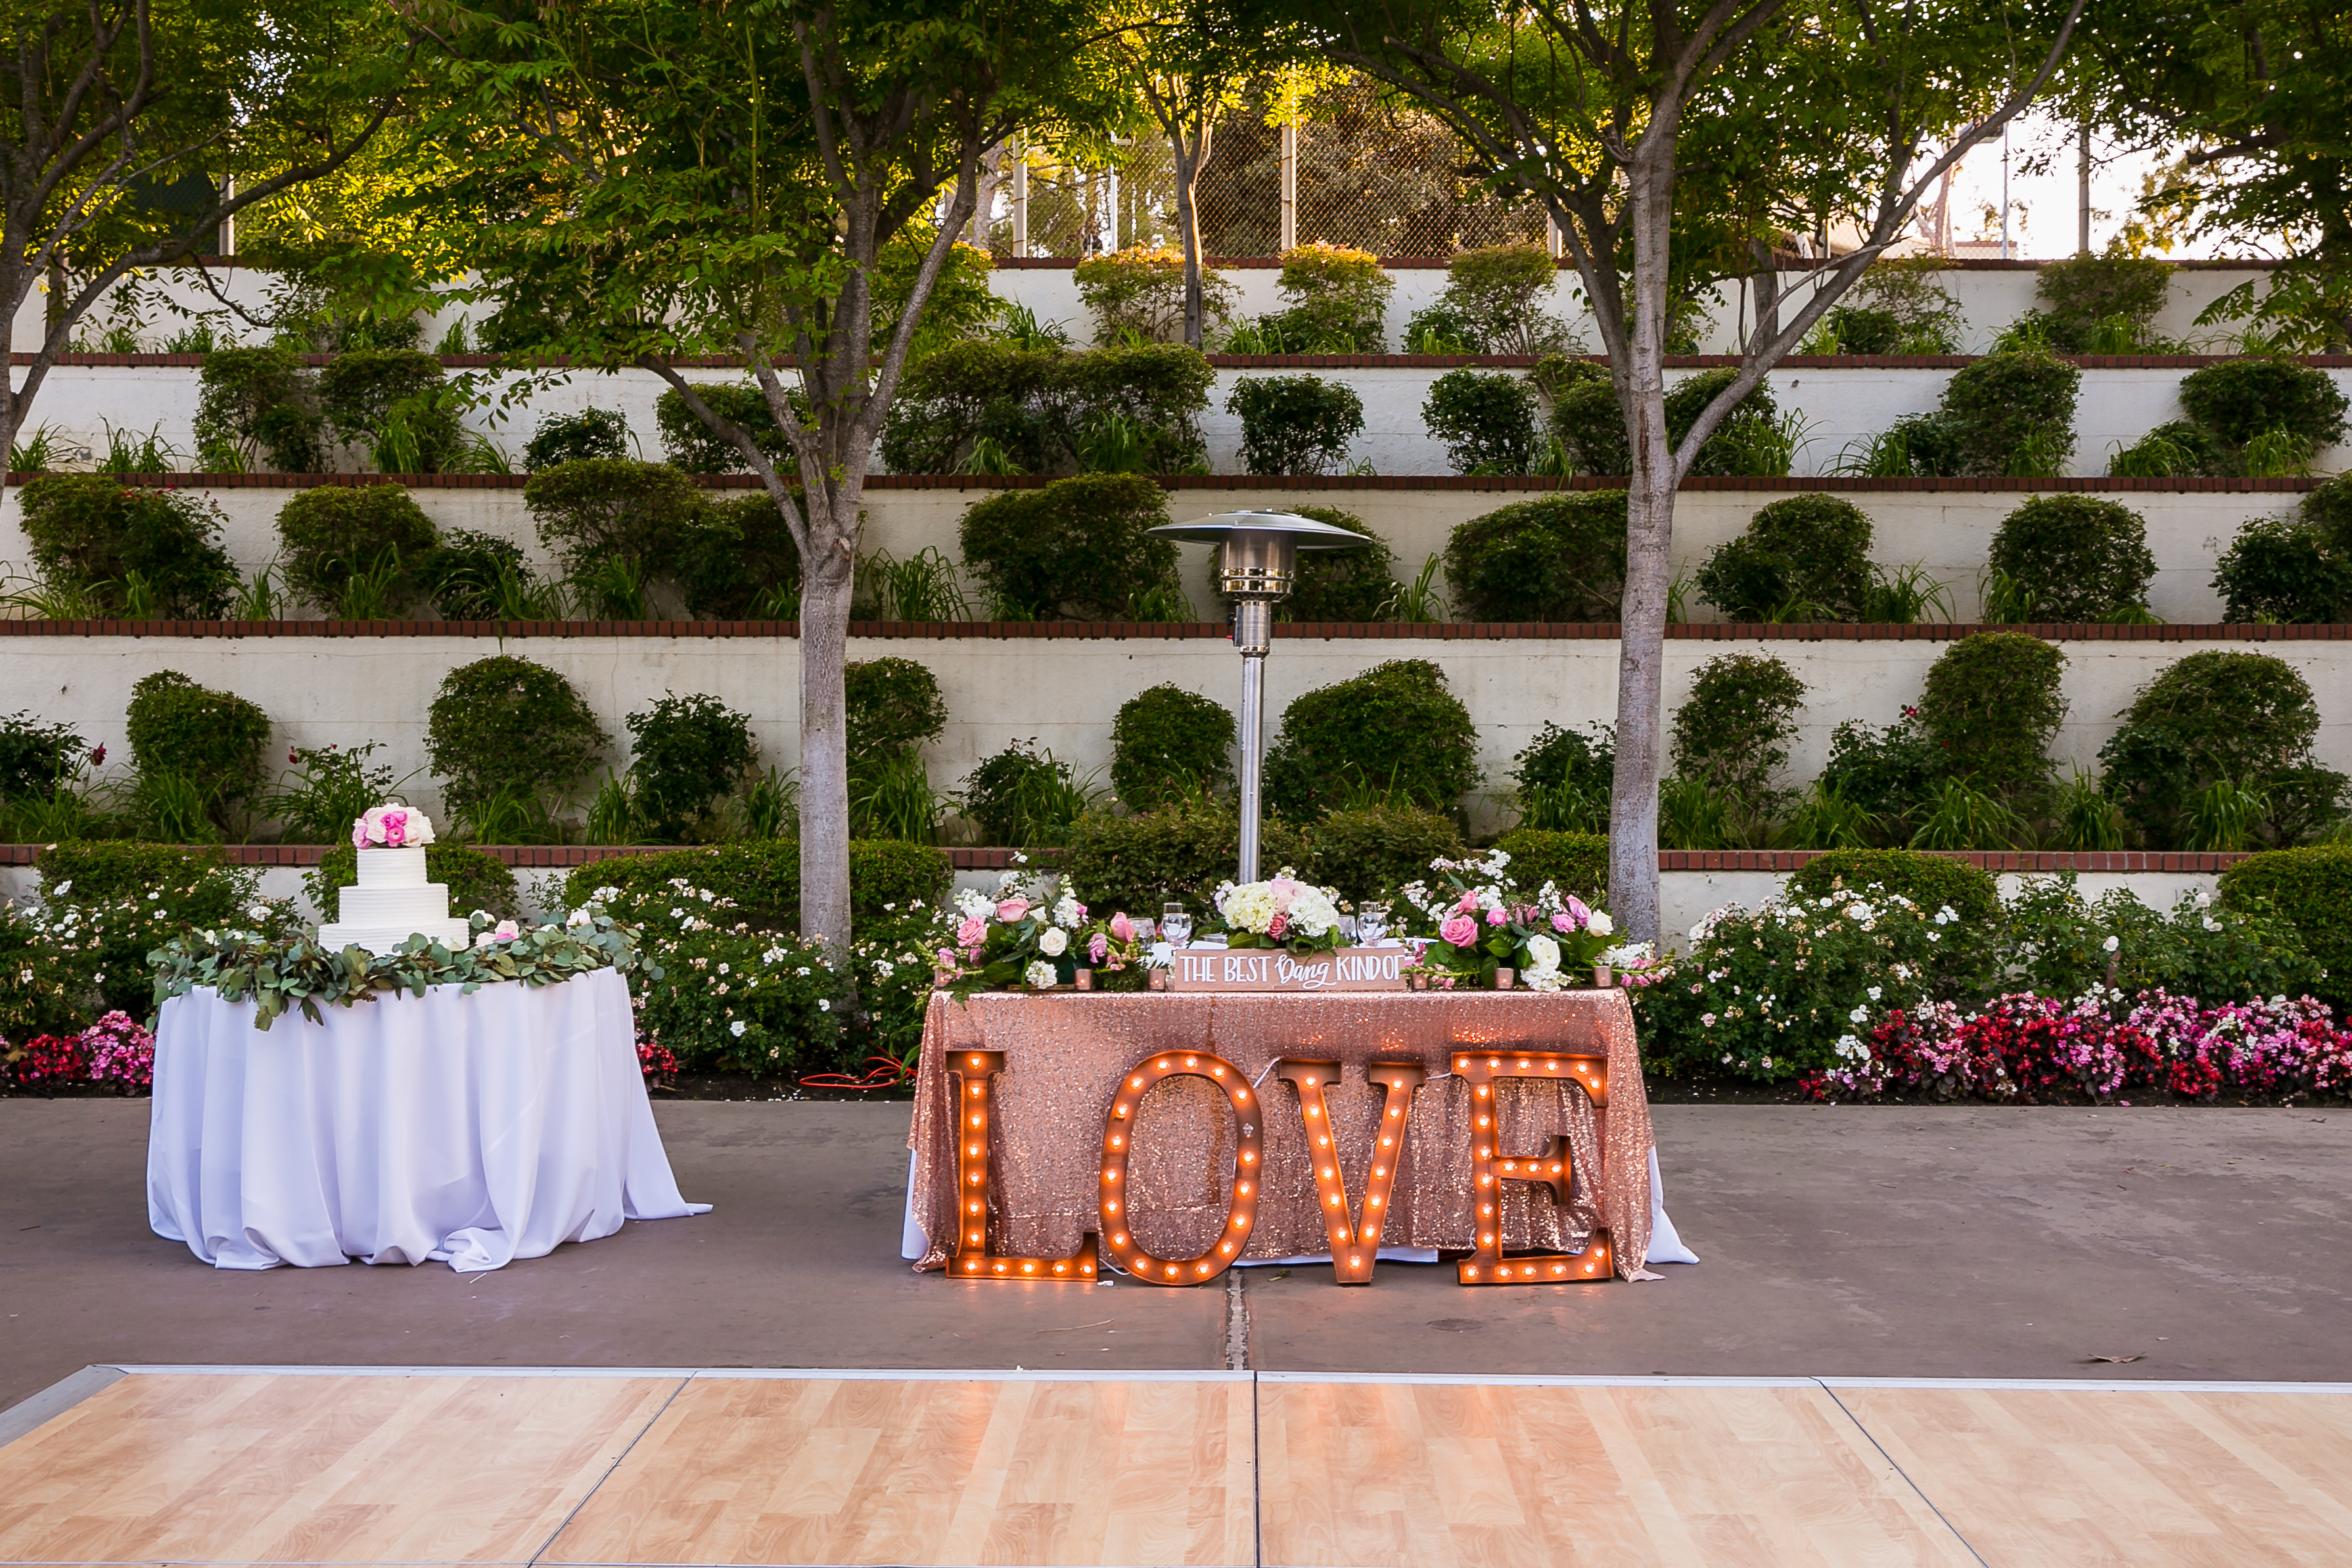 Los angeles outdoor wedding venue mountaingate country club Garden wedding venues los angeles